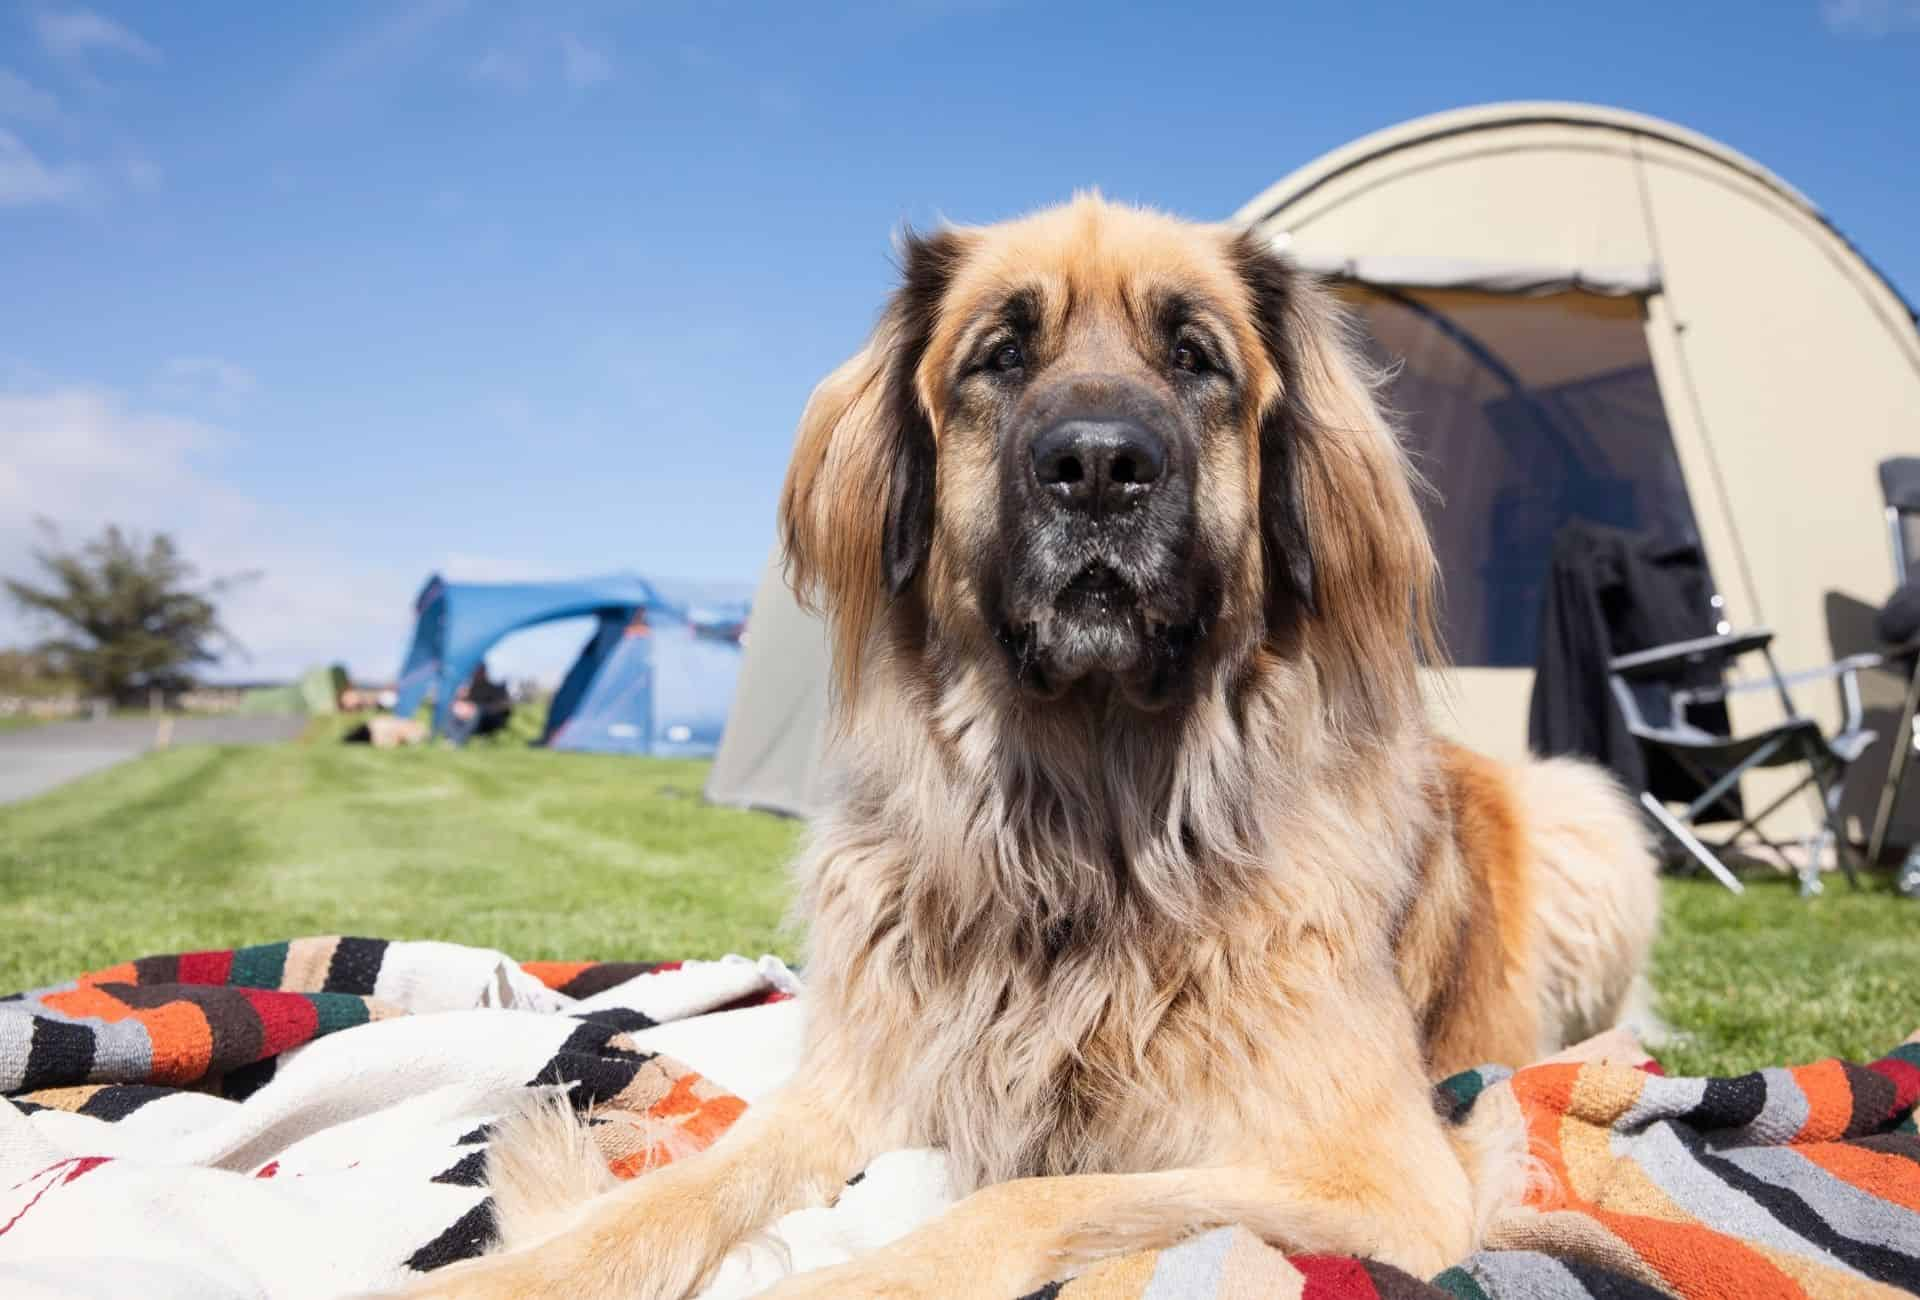 Big Leonberger dog enjoys the sun while he's outside of the camping tent on a blanket.